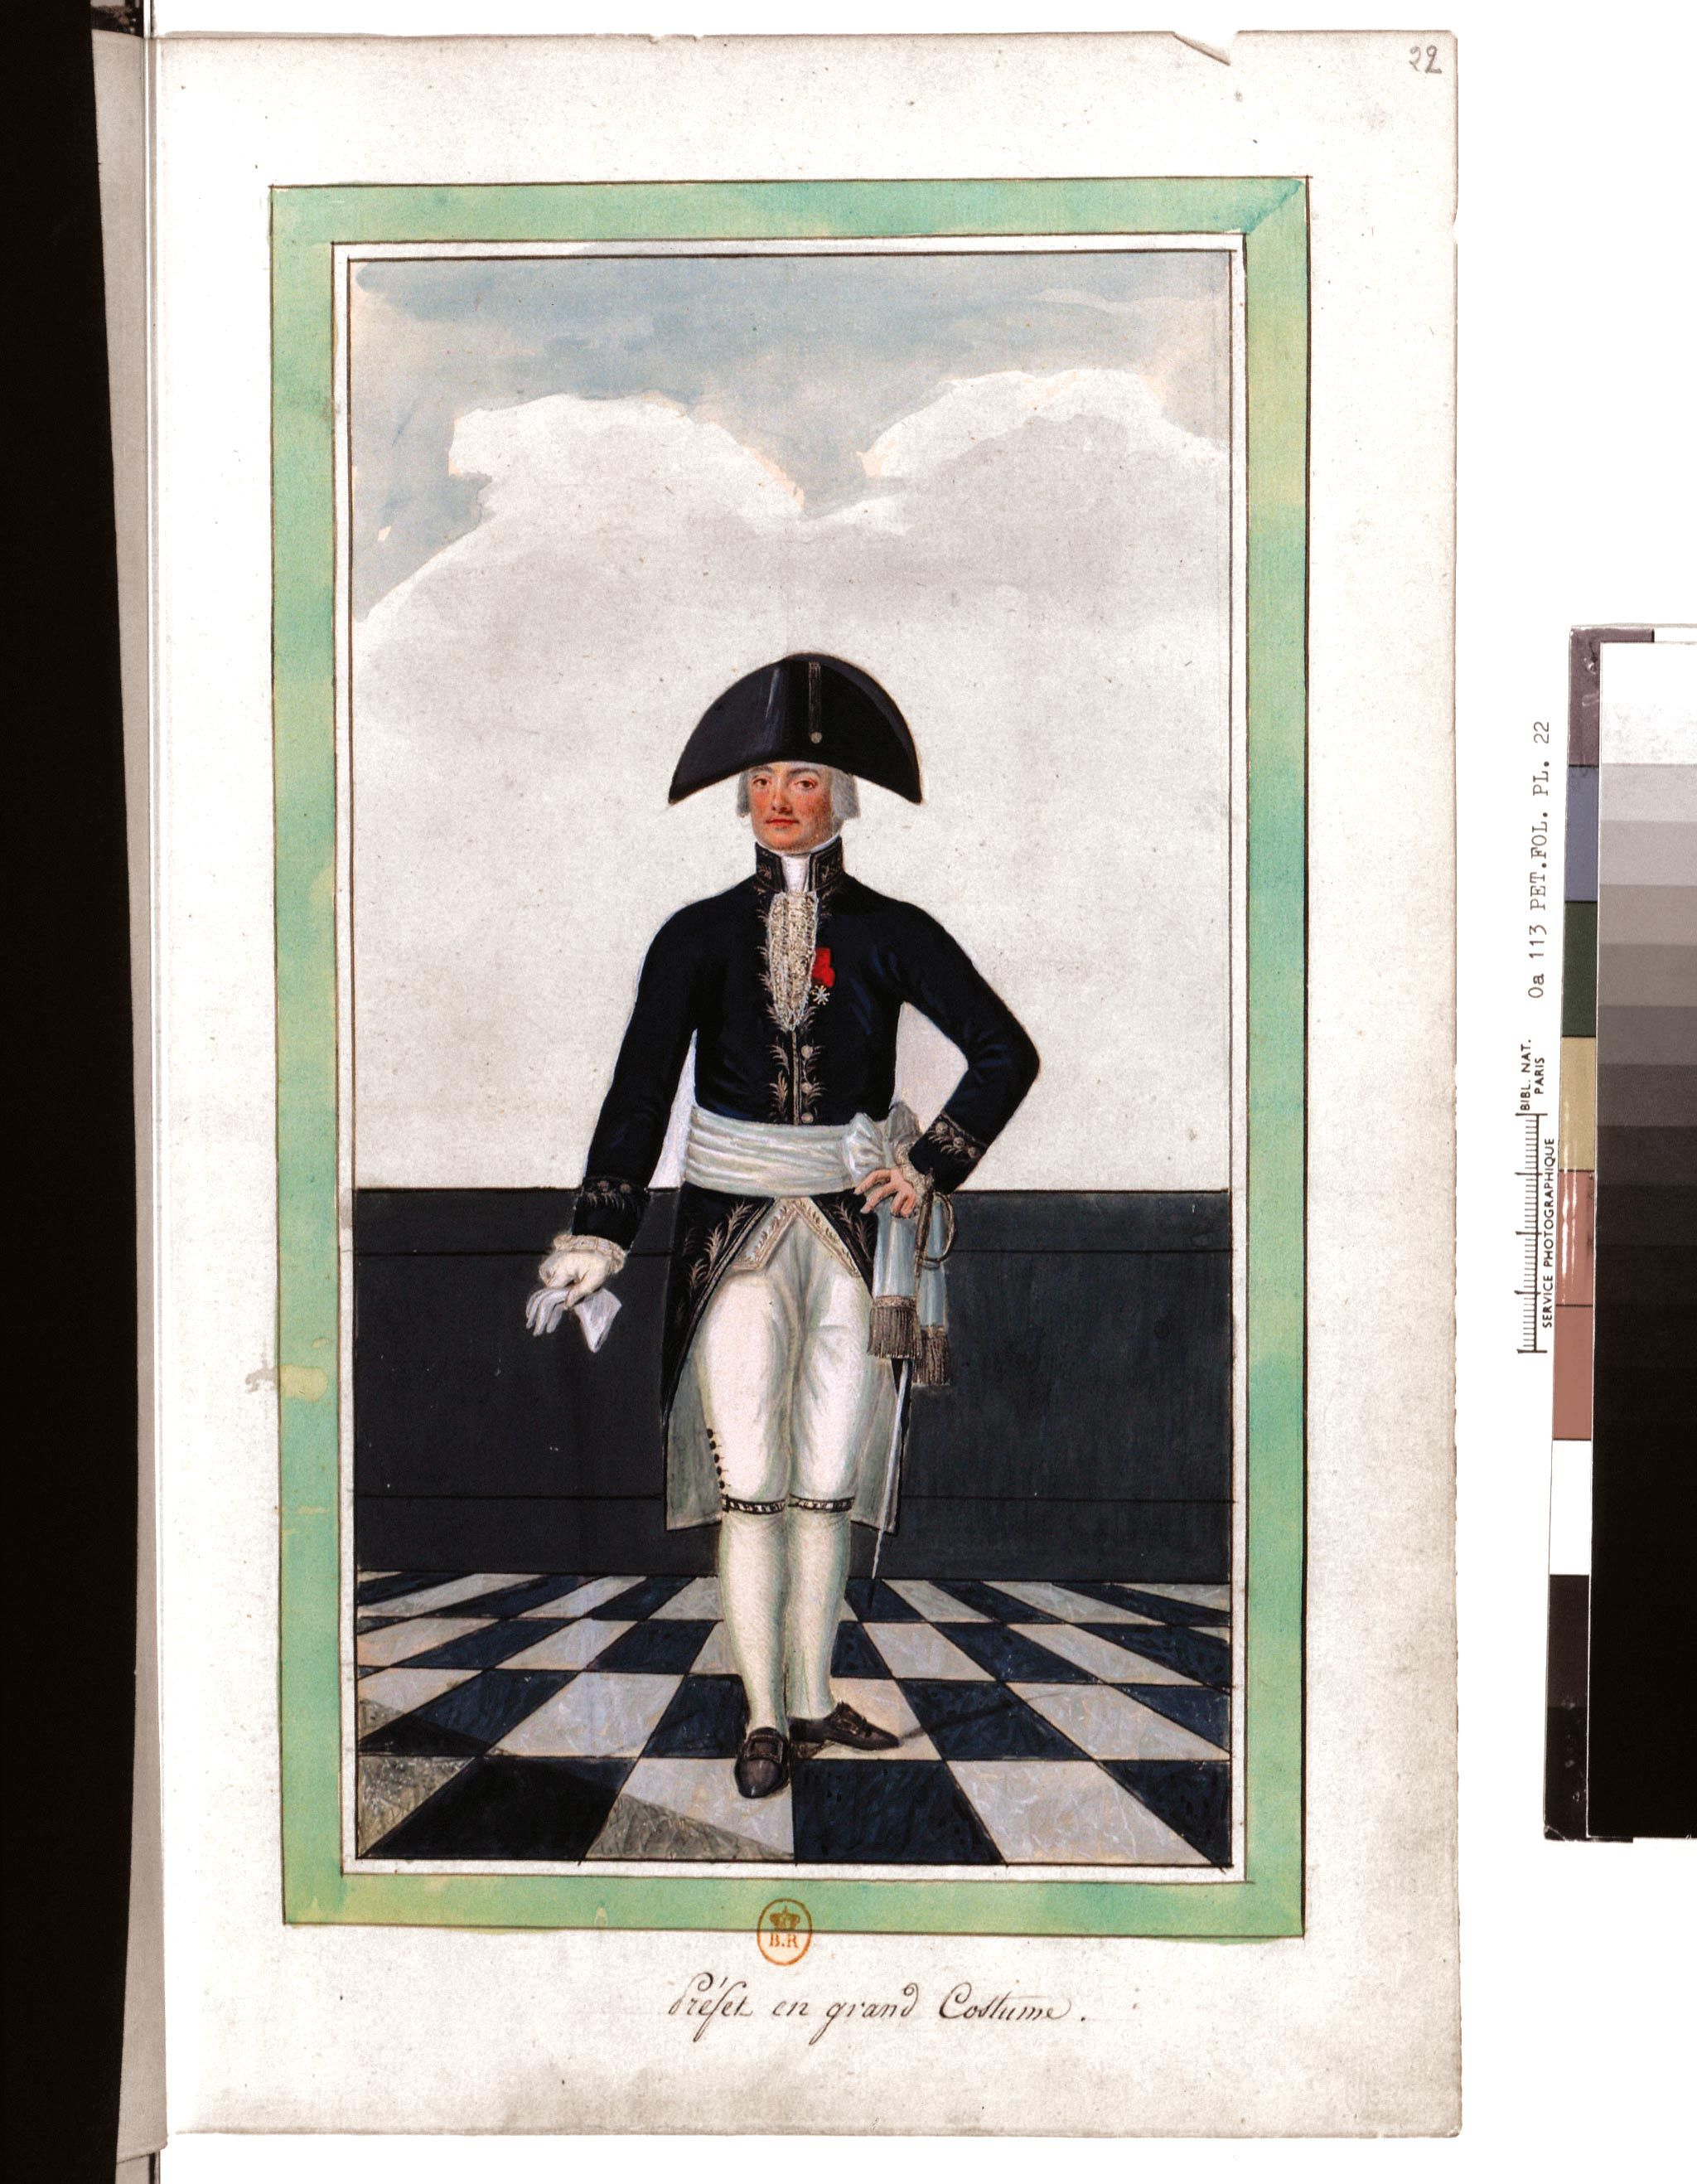 <stamp theme='his-green2'>Doc. 3</stamp> Préfet en costume